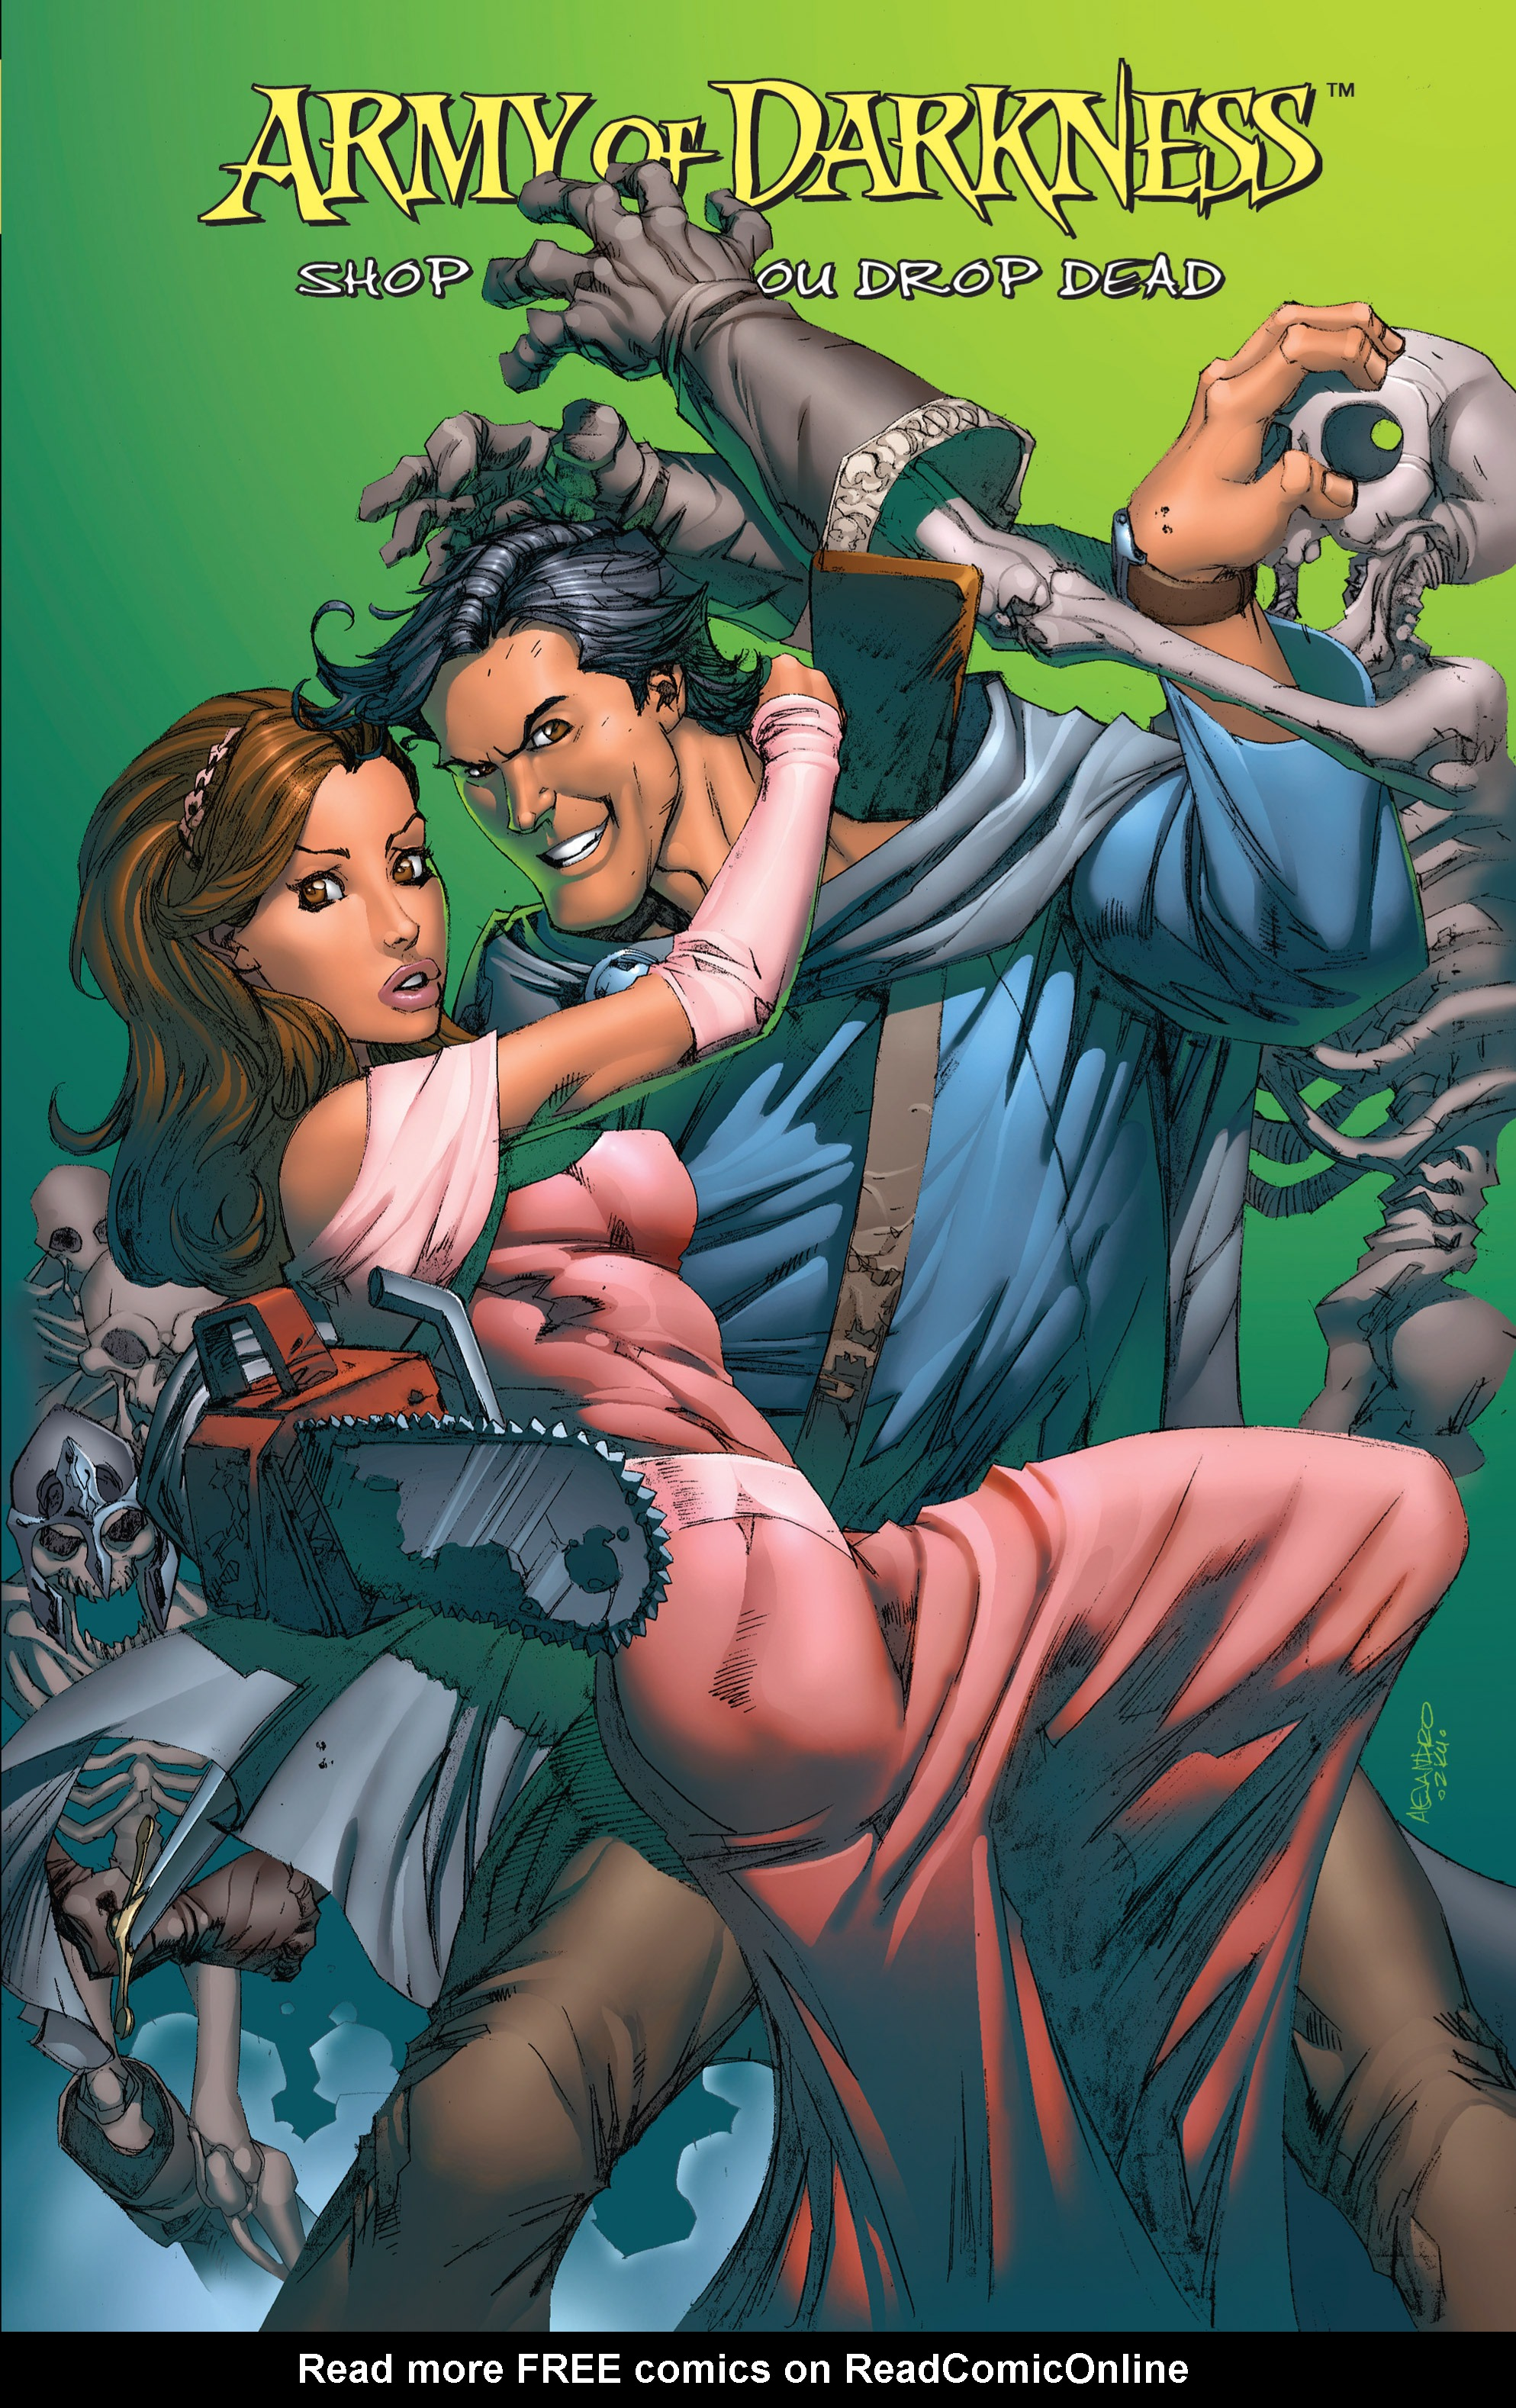 Read online Army of Darkness: Shop Till You Drop Dead comic -  Issue #Army of Darkness: Shop Till You Drop Dead TPB - 1